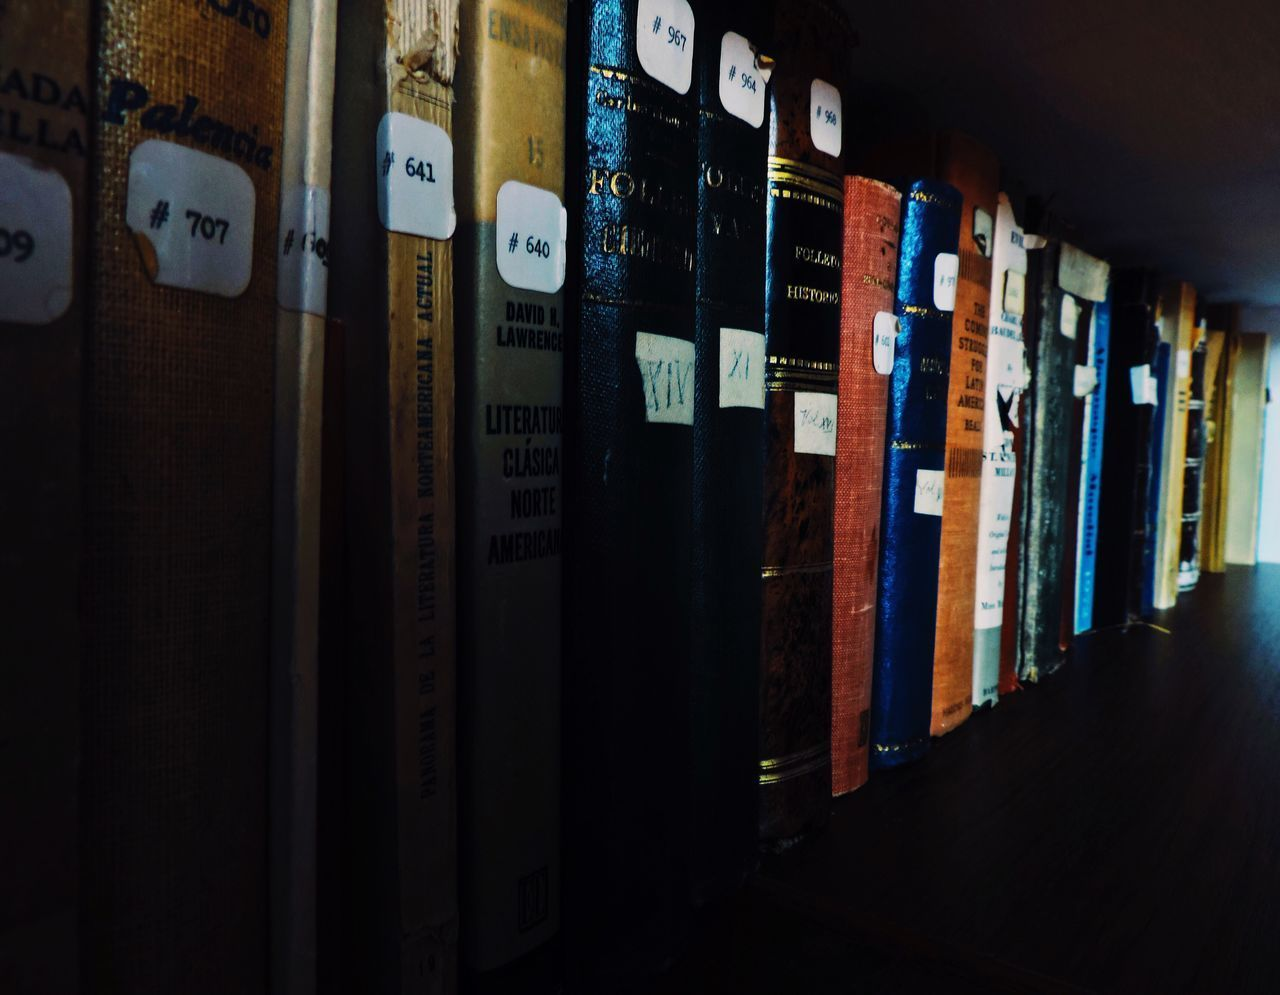 indoors, no people, collection, book, large group of objects, bookshelf, shelf, education, close-up, library, day